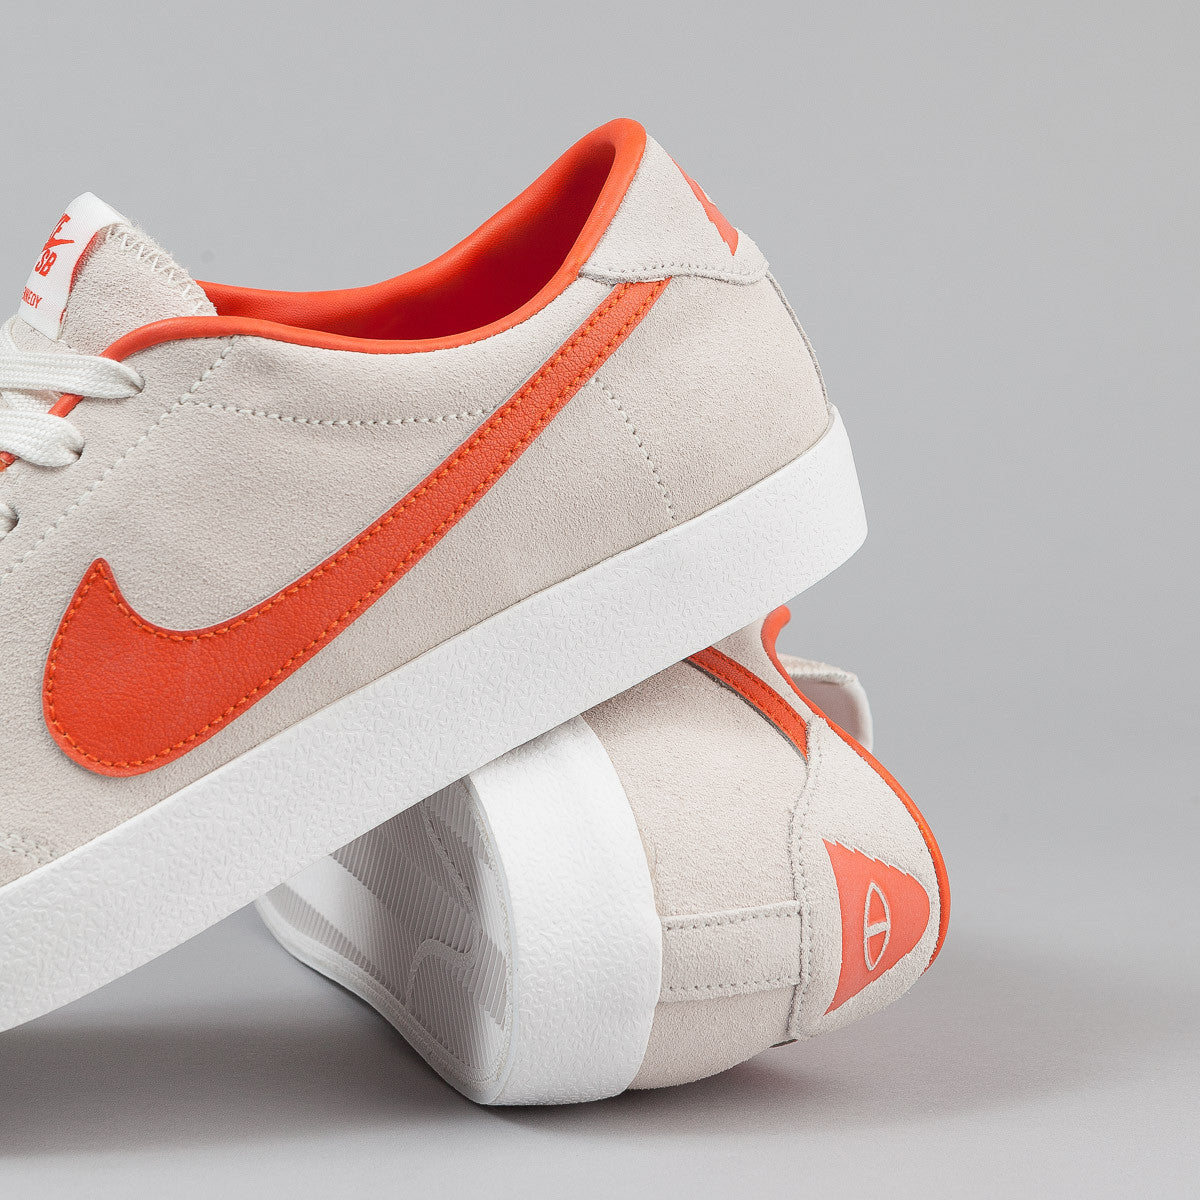 Nike SB x Poler Air Zoom All Court CK Shoes - Ivory / Univ Orange Light-Bone